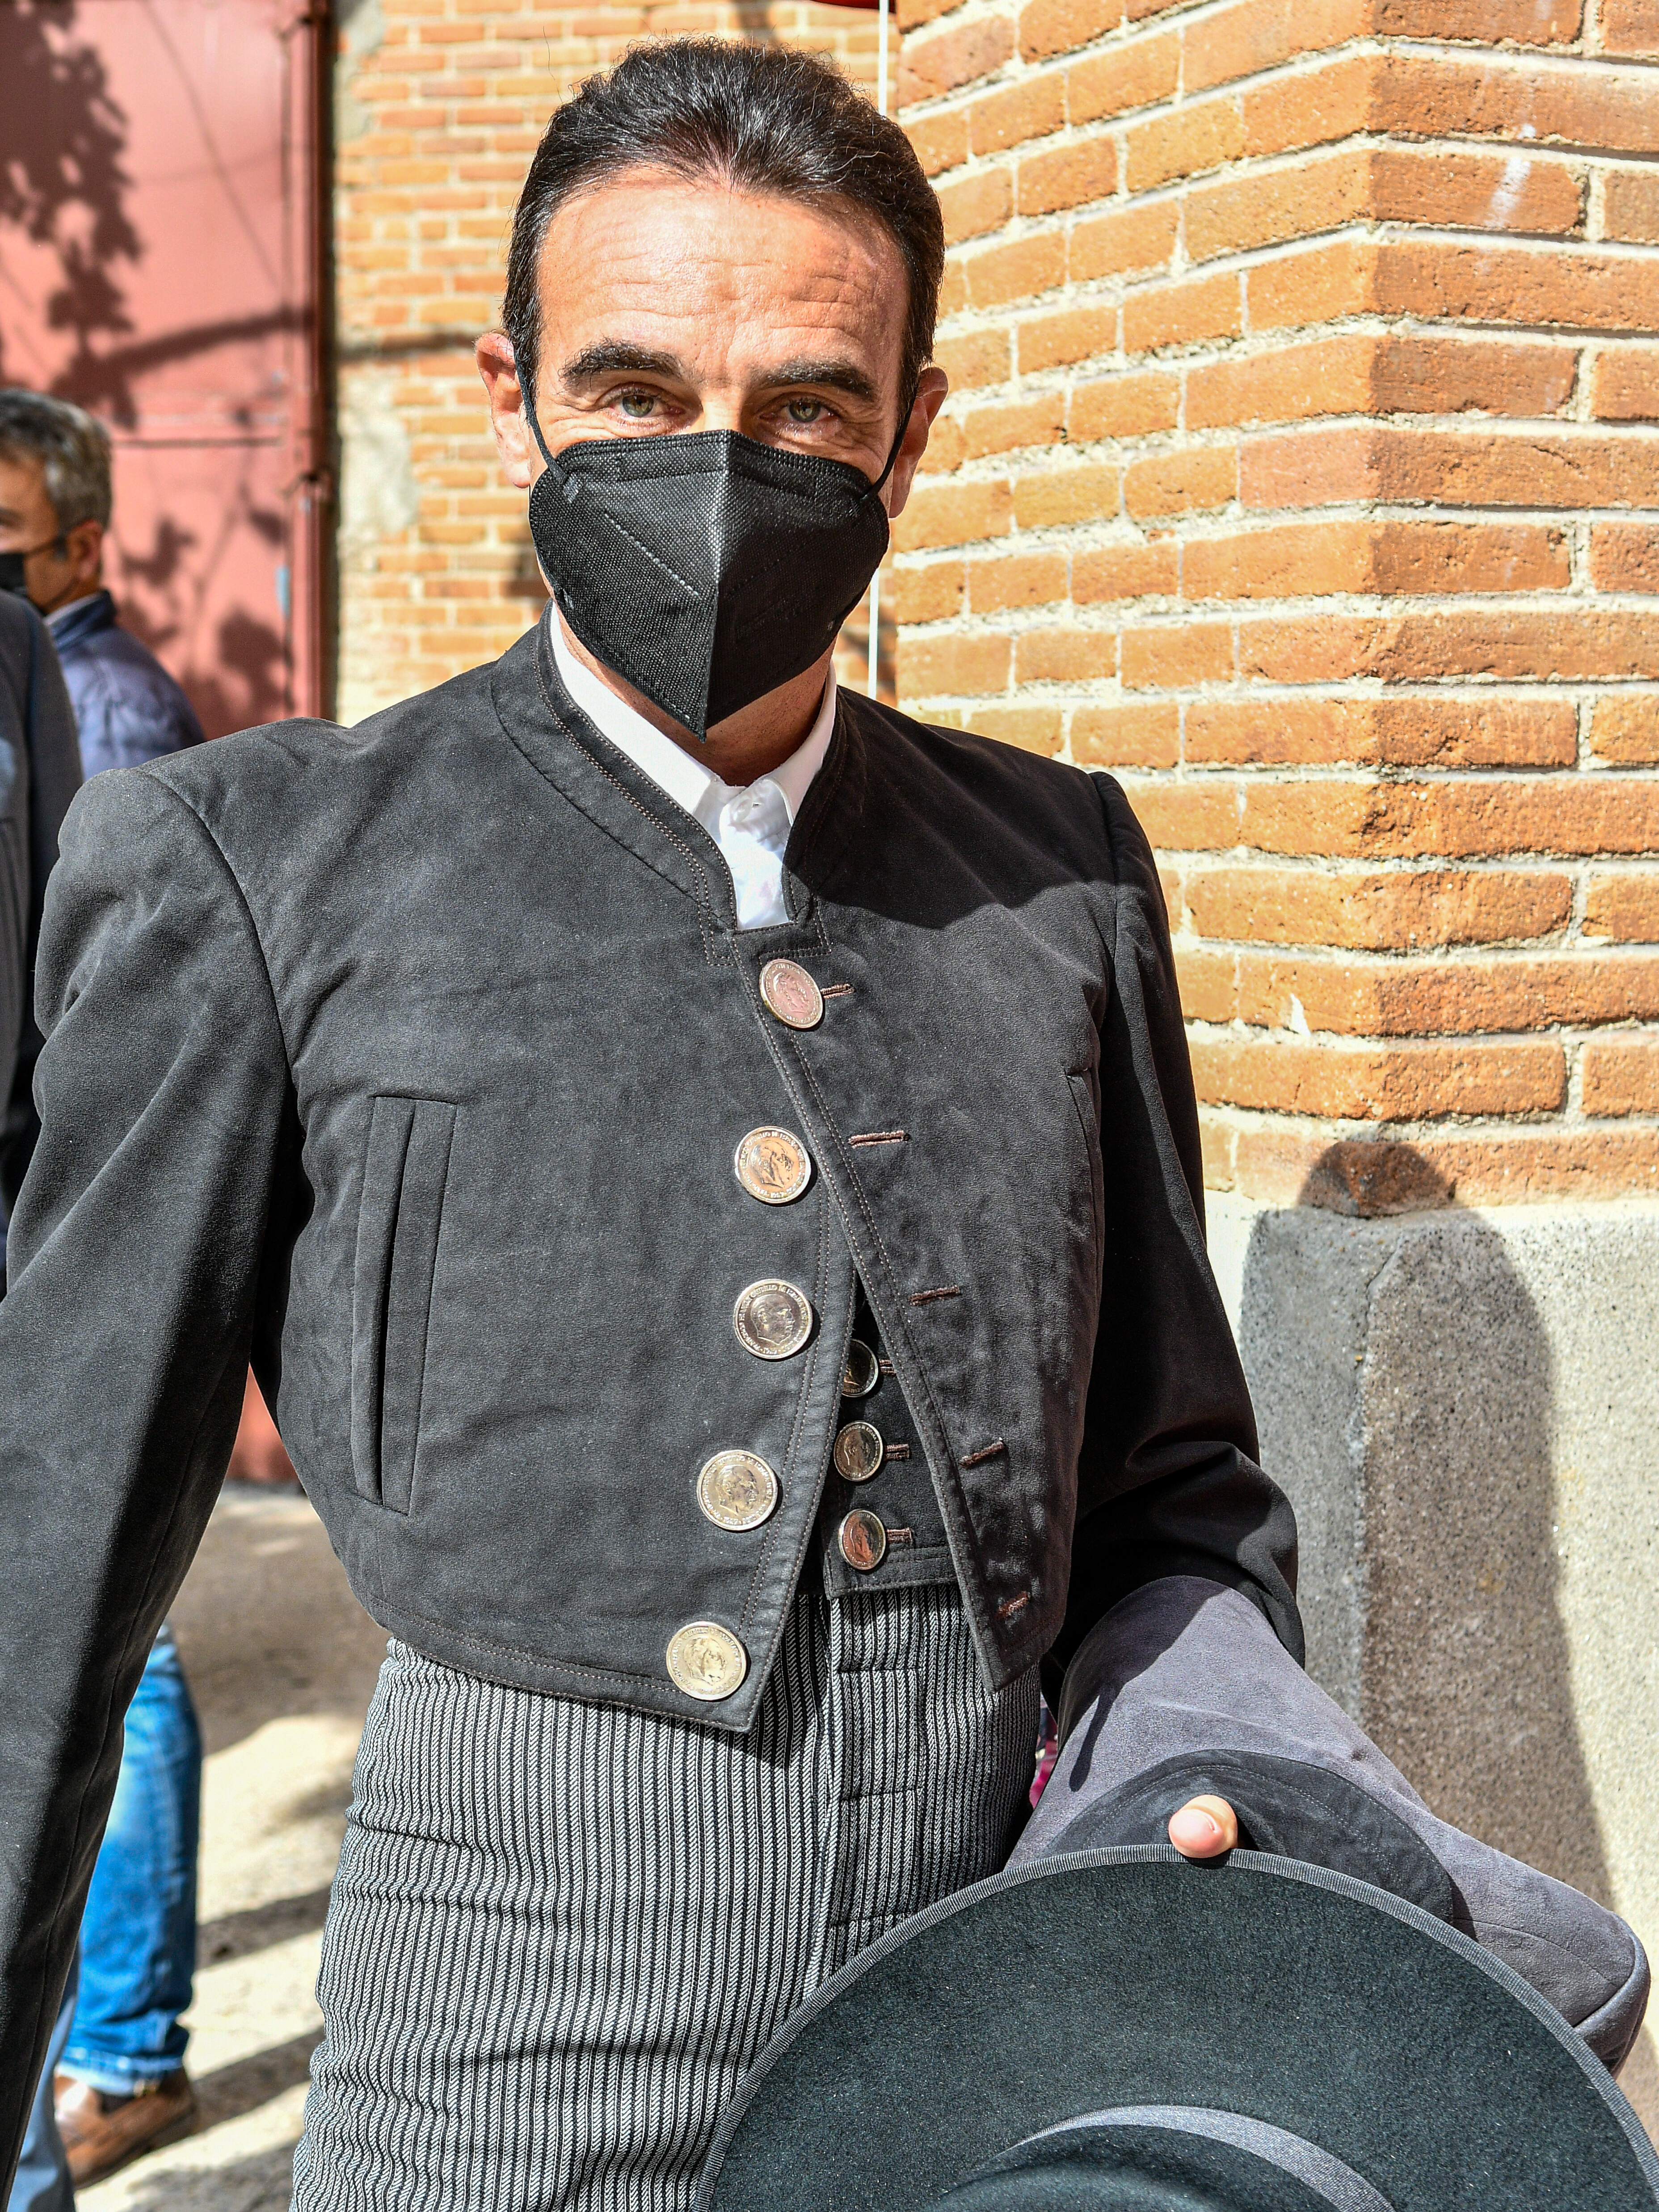 The bullfighter Enrique Ponce, on May 2 in Las Ventas, with the effigy of Franco on the button of his jacket.